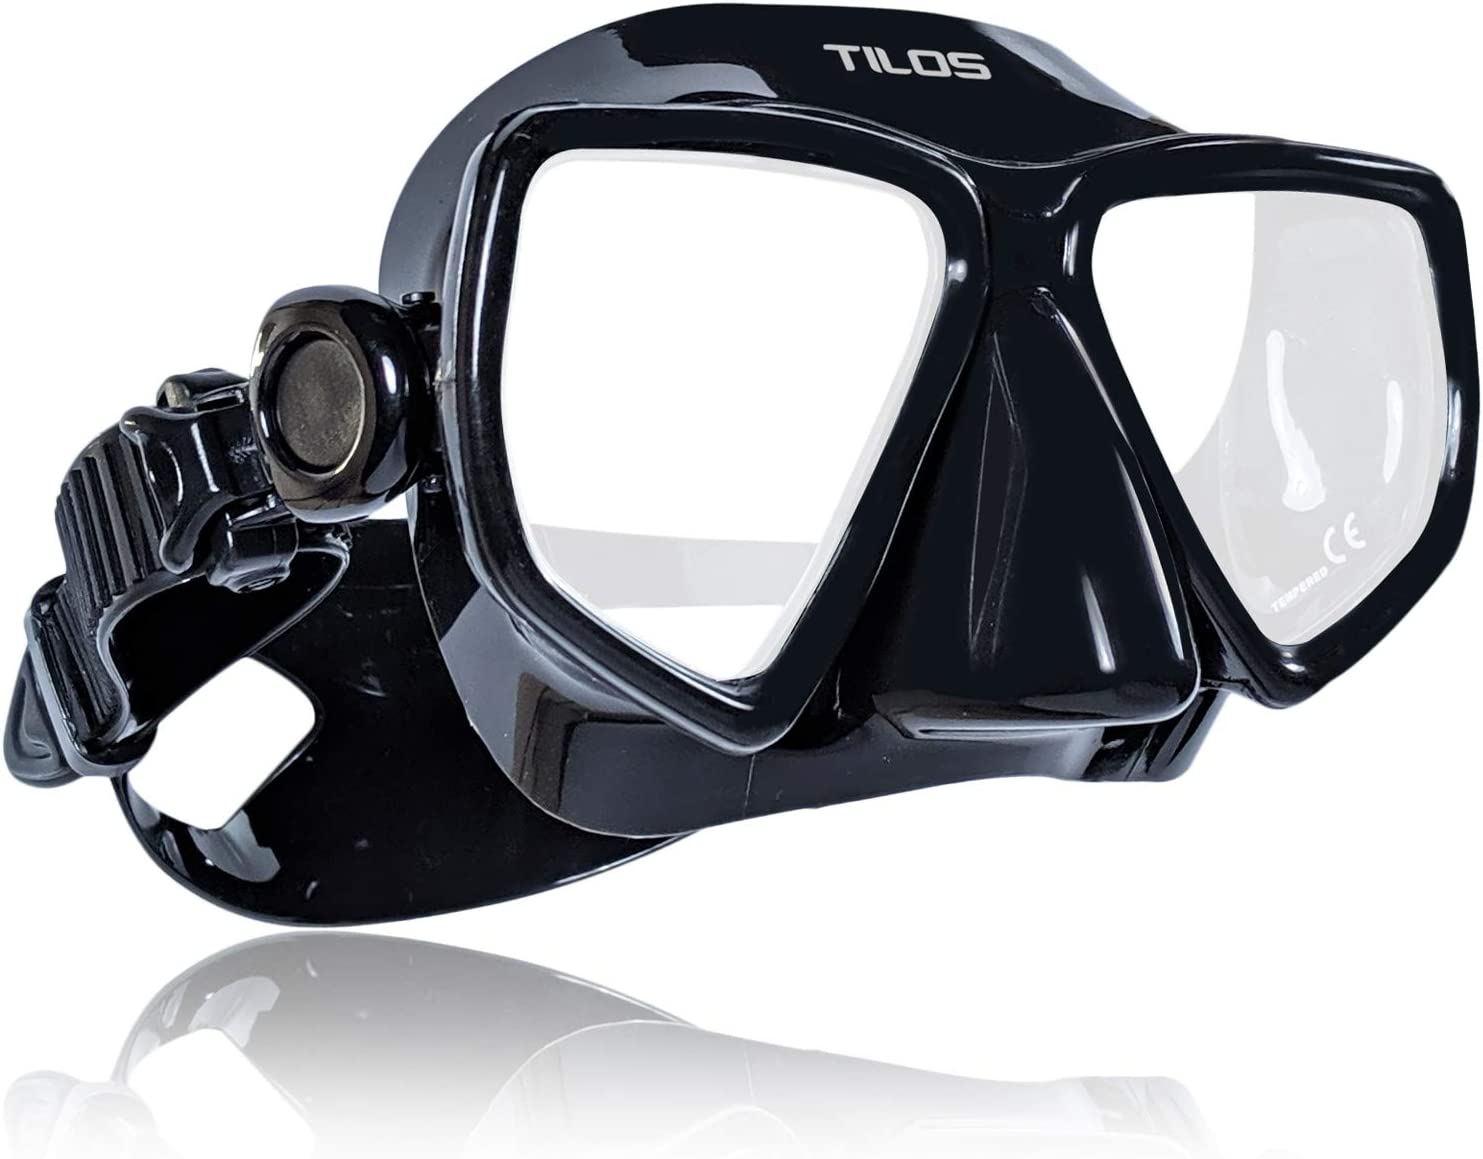 Tilos Flex Frameless Foldable Mask Fits Perfectly in Your Pocket